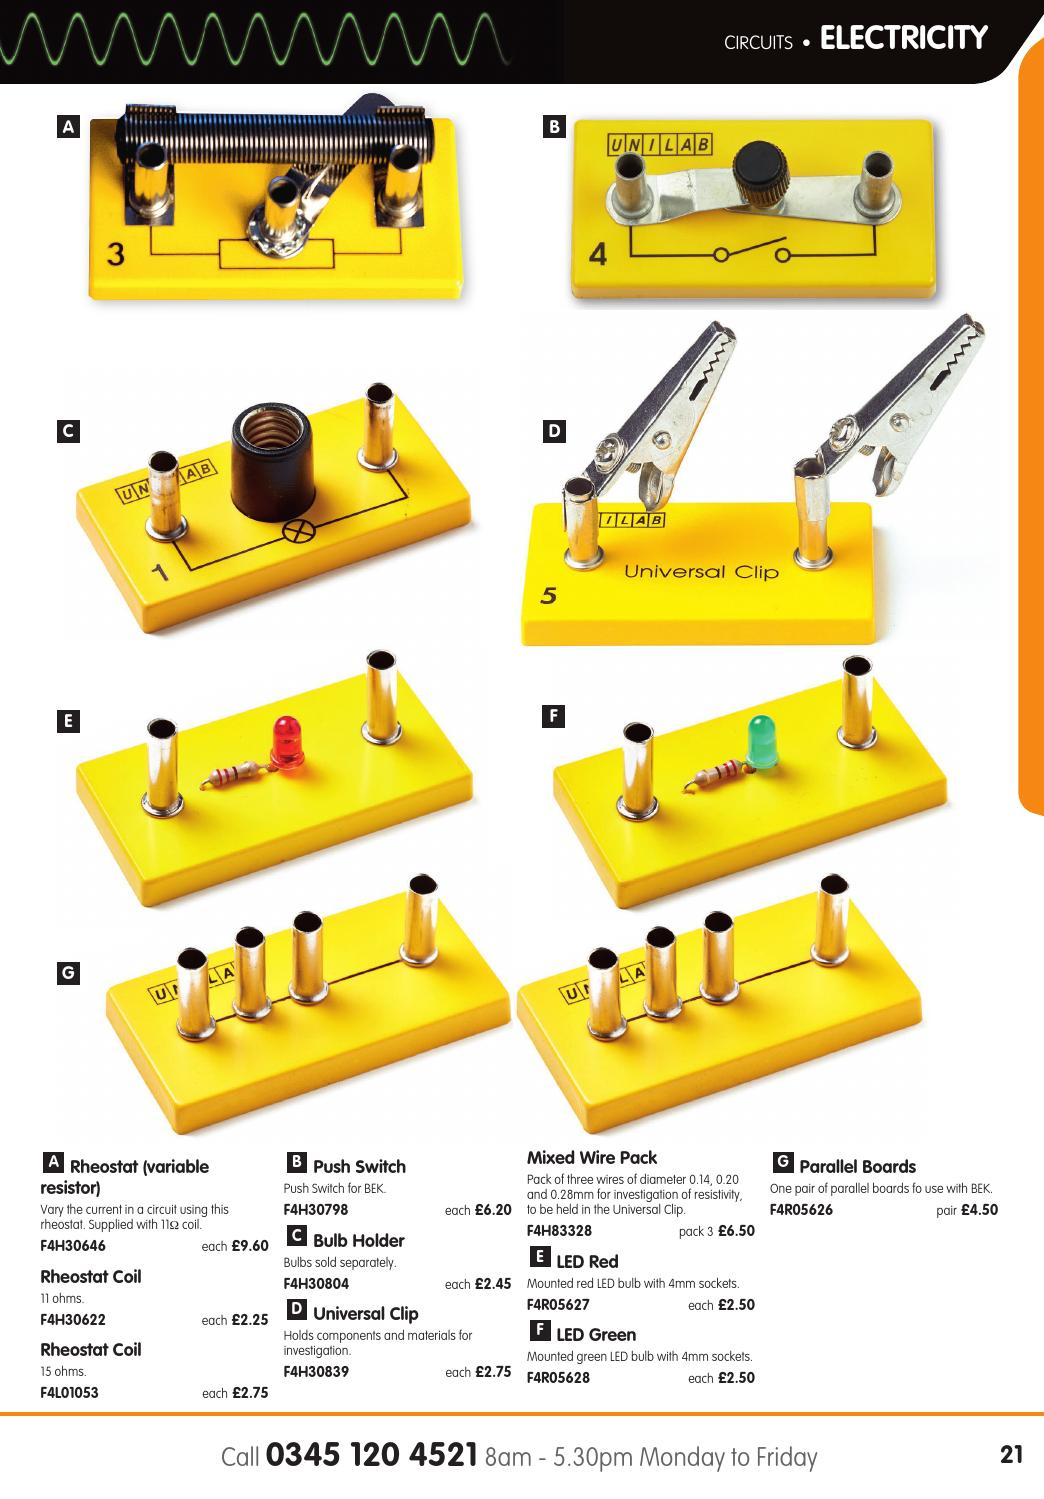 Unilab Catalogue 2016 17 By Findel Ltd Issuu Variable Resistors Can Also Be Used To Vary The Current In A Circuit